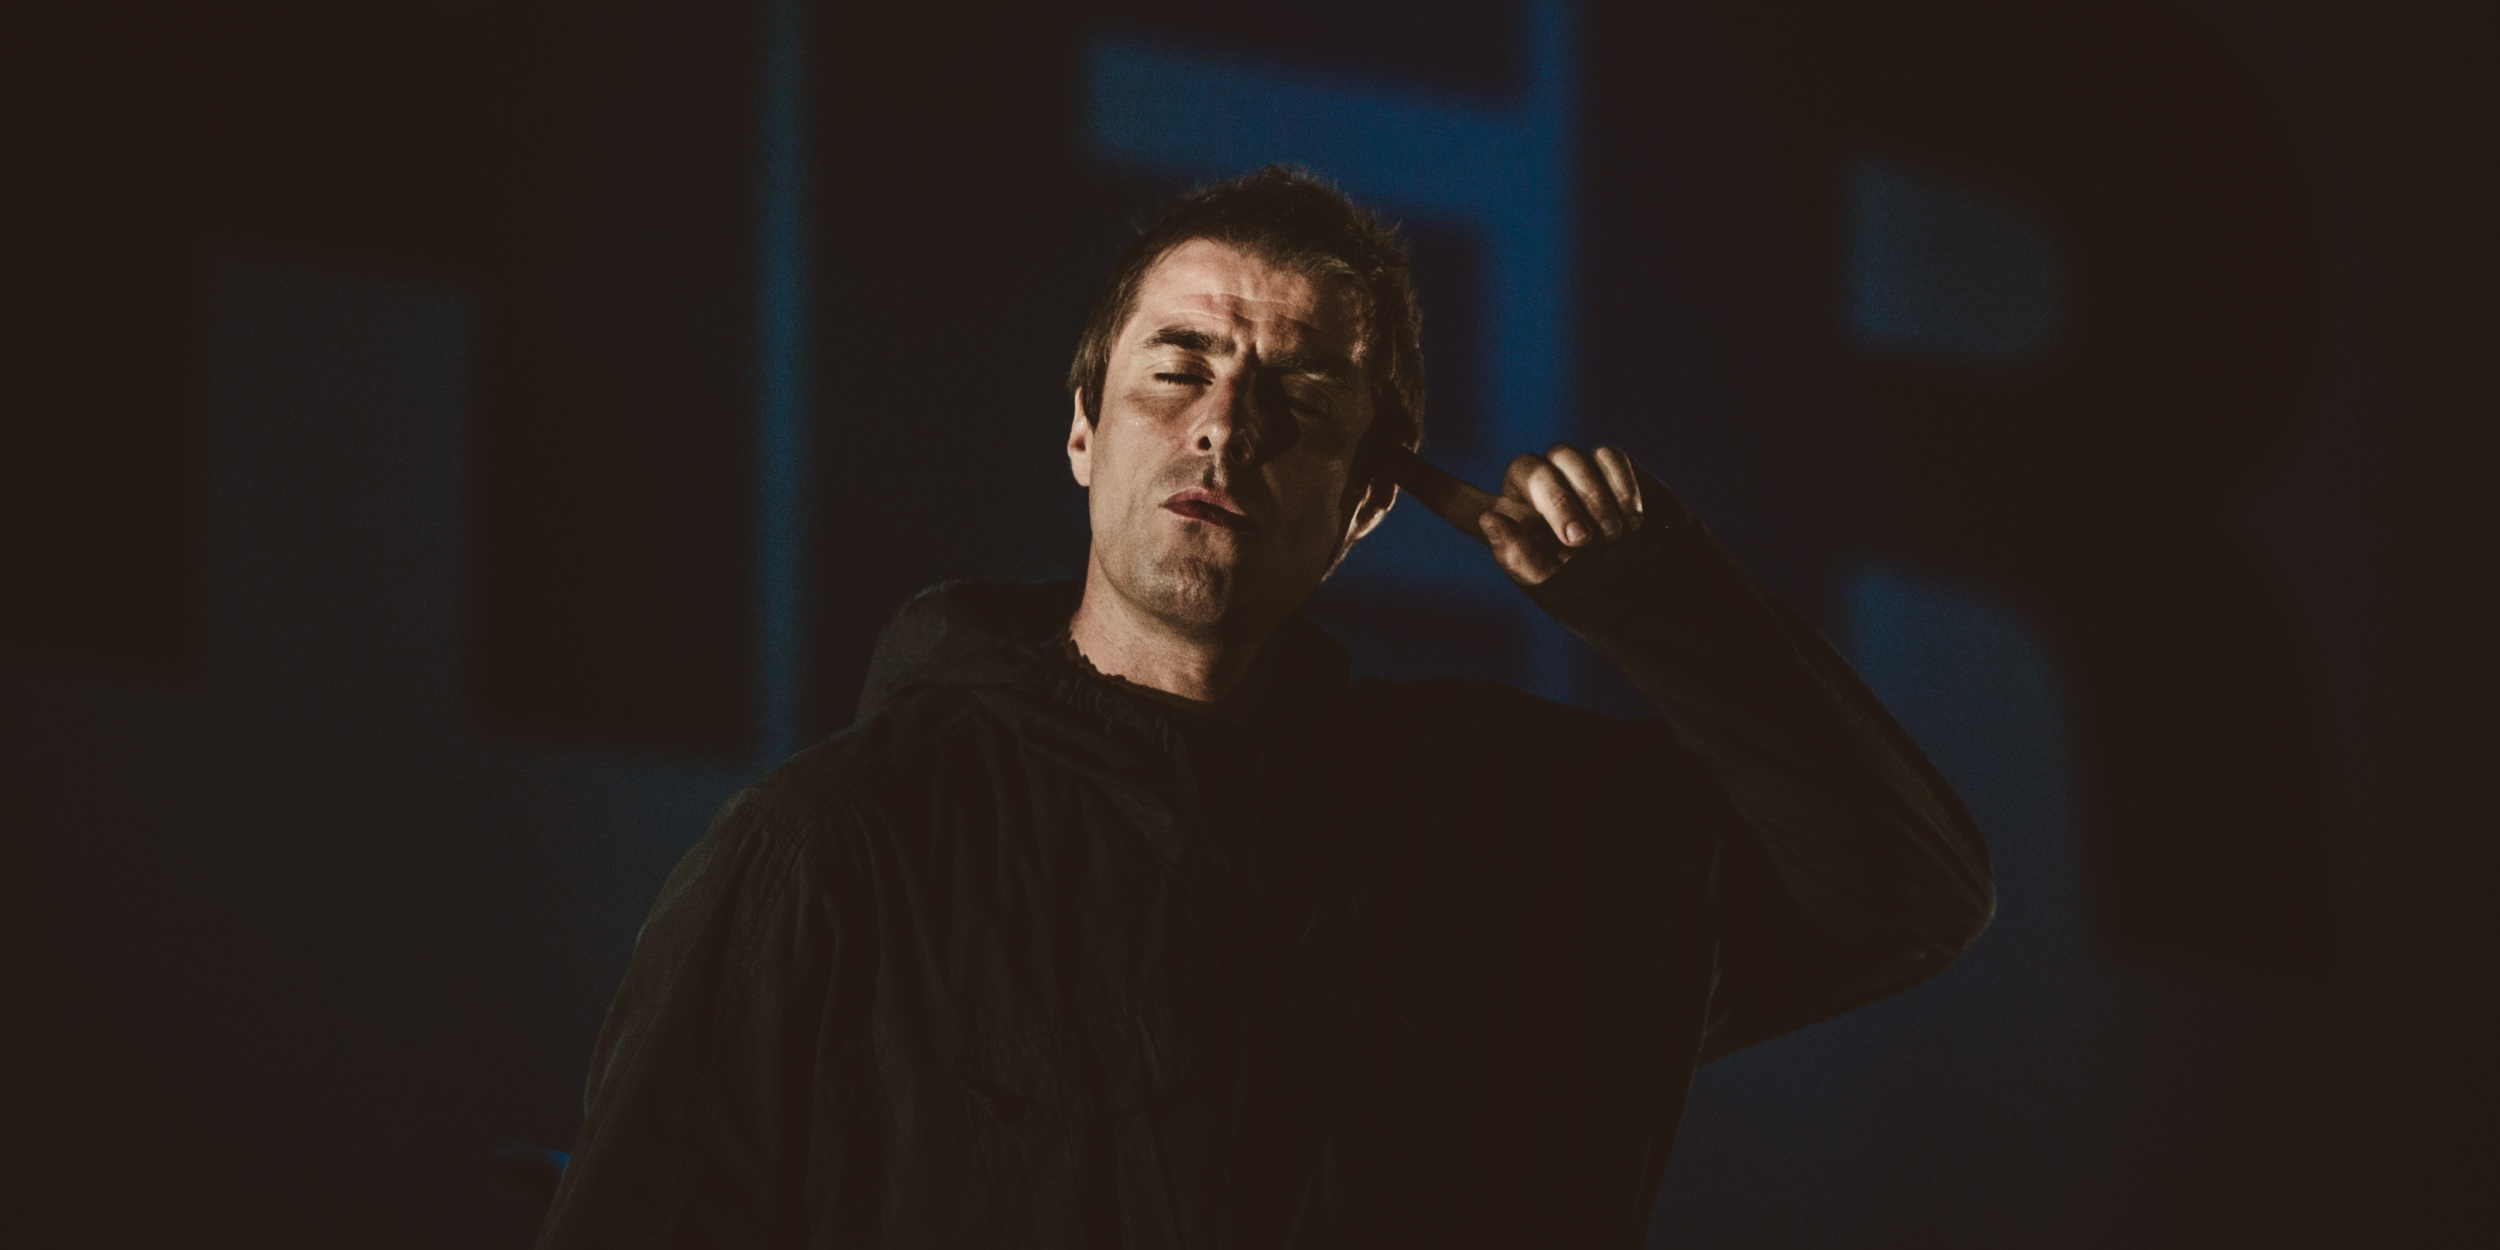 Liam Gallagher gave more of himself than ever in Manila debut — review